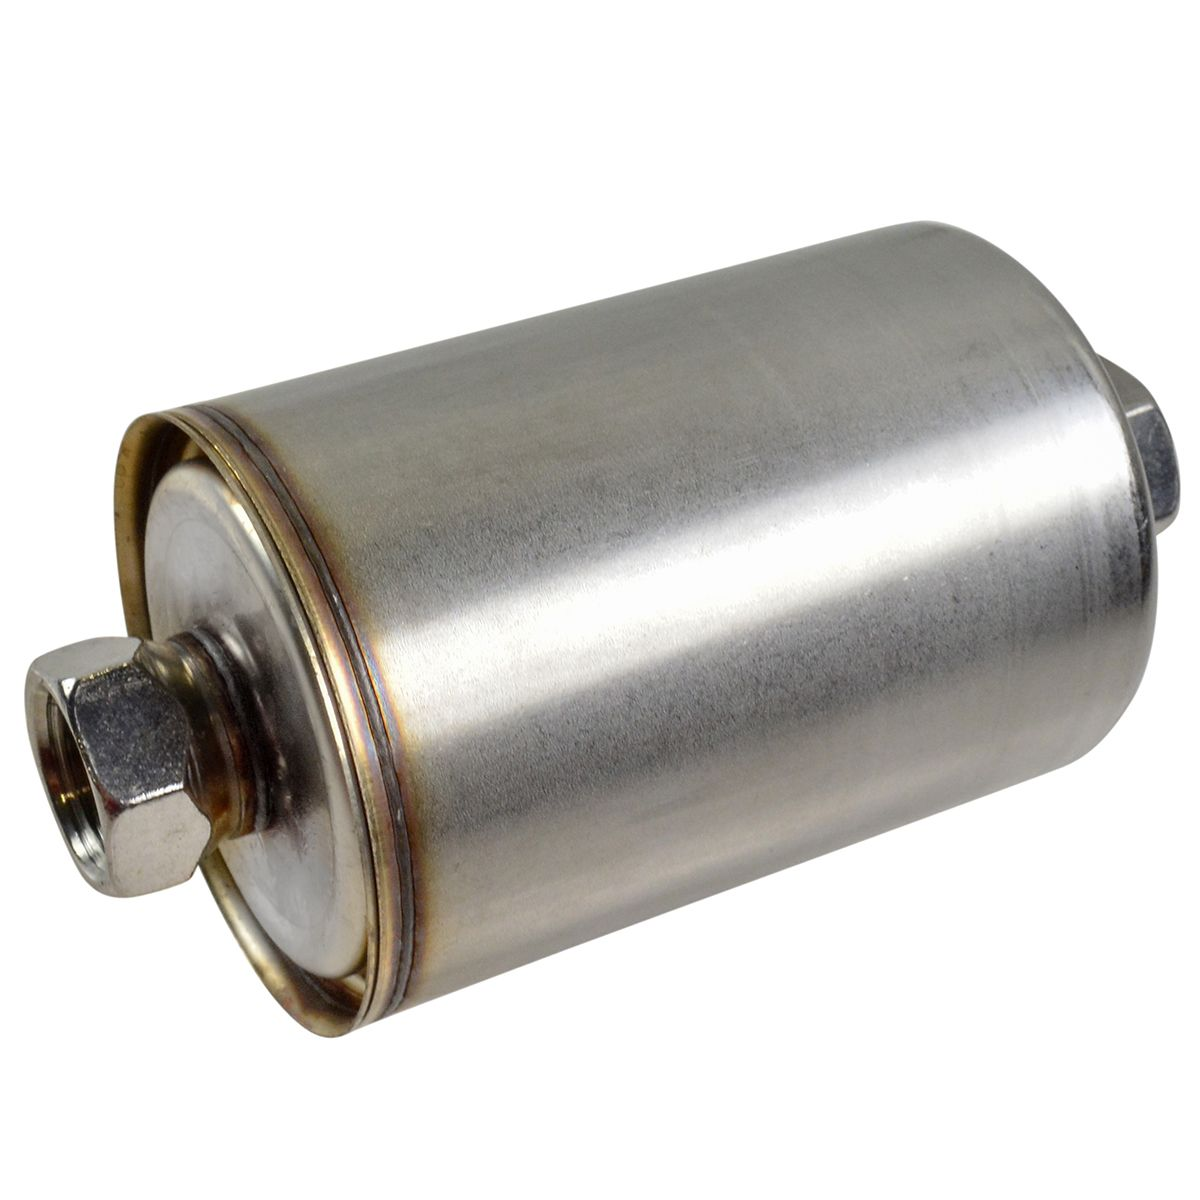 AC DELCO GF652F Fuel Filter for Chevy GMC Pontiac Buick Jaguar Pontiac